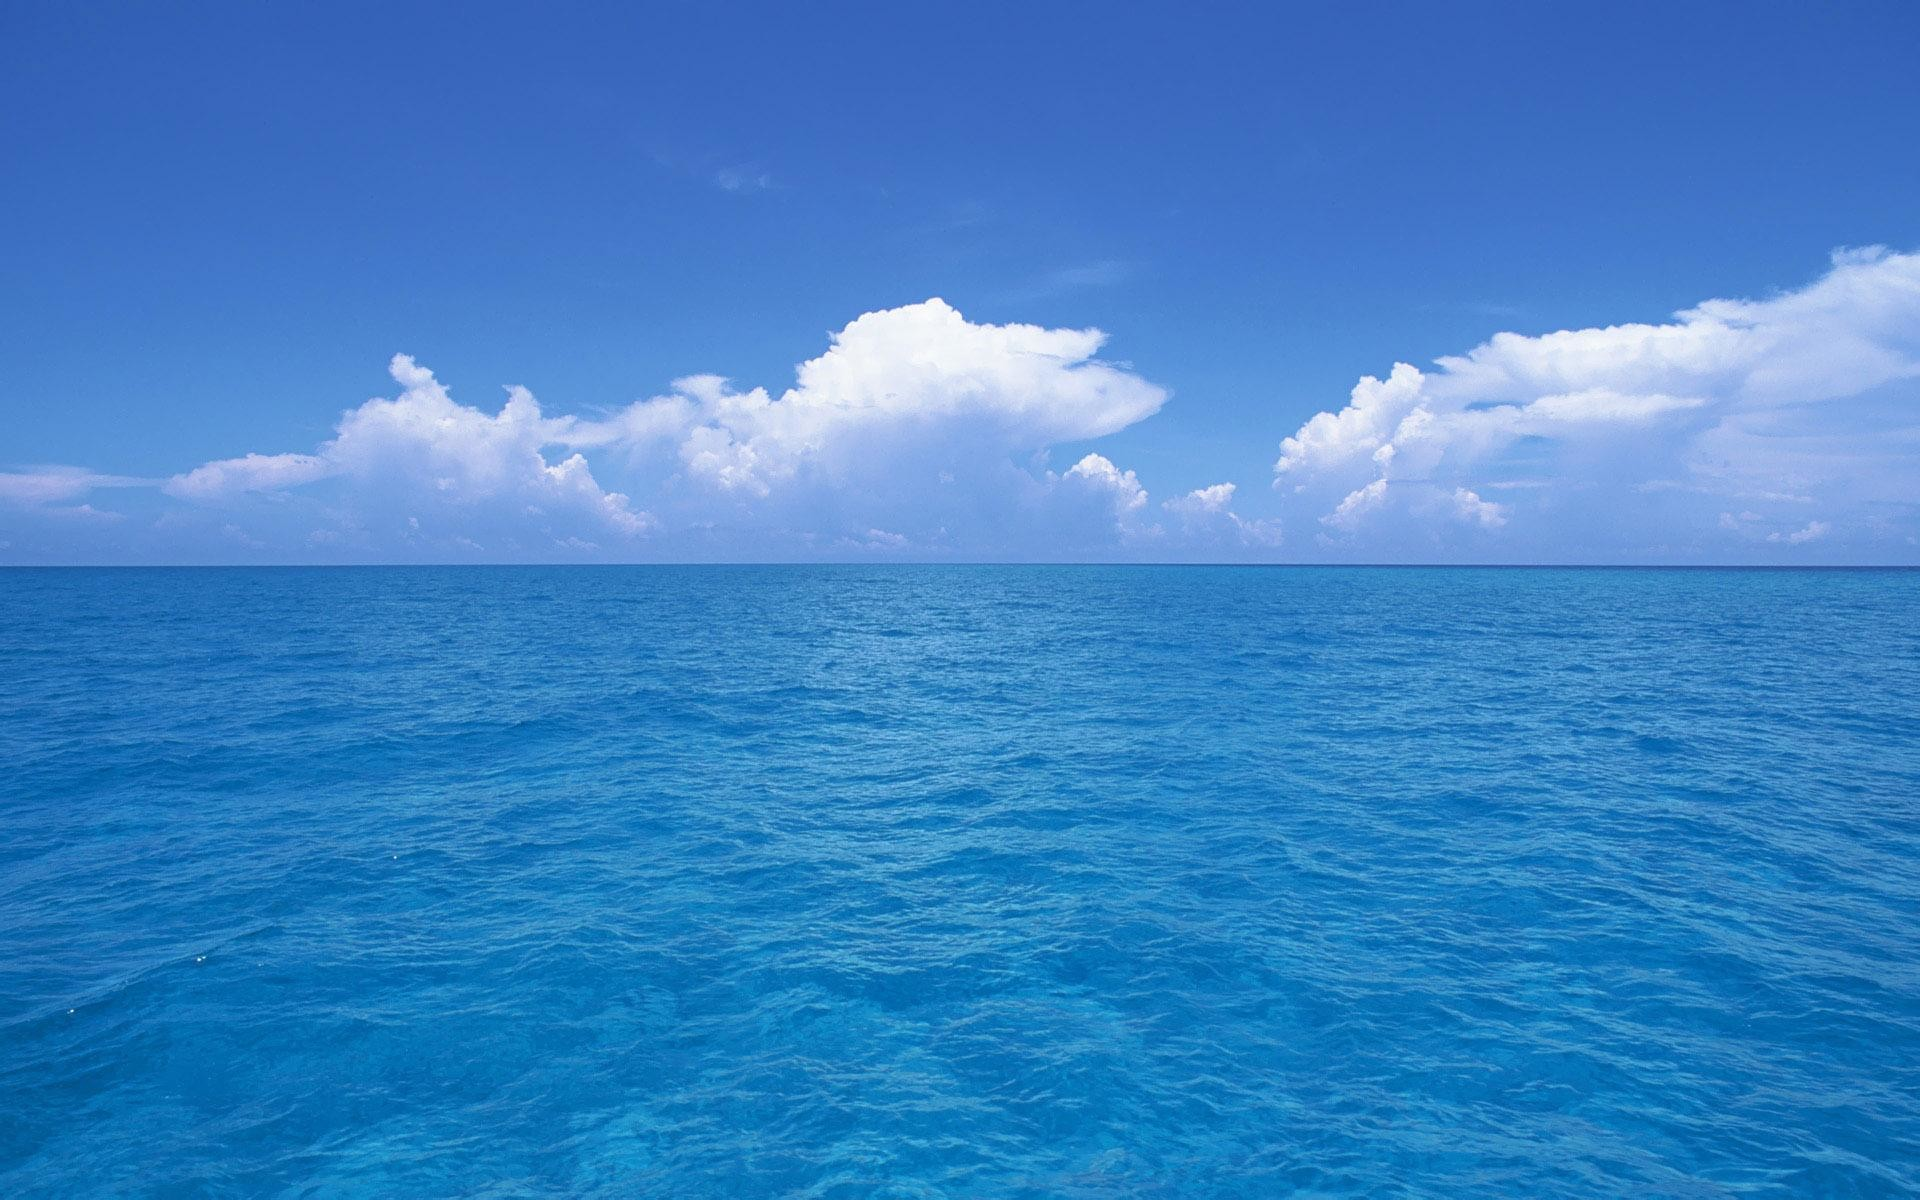 Ocean Wallpapers High Resolution 71 Images